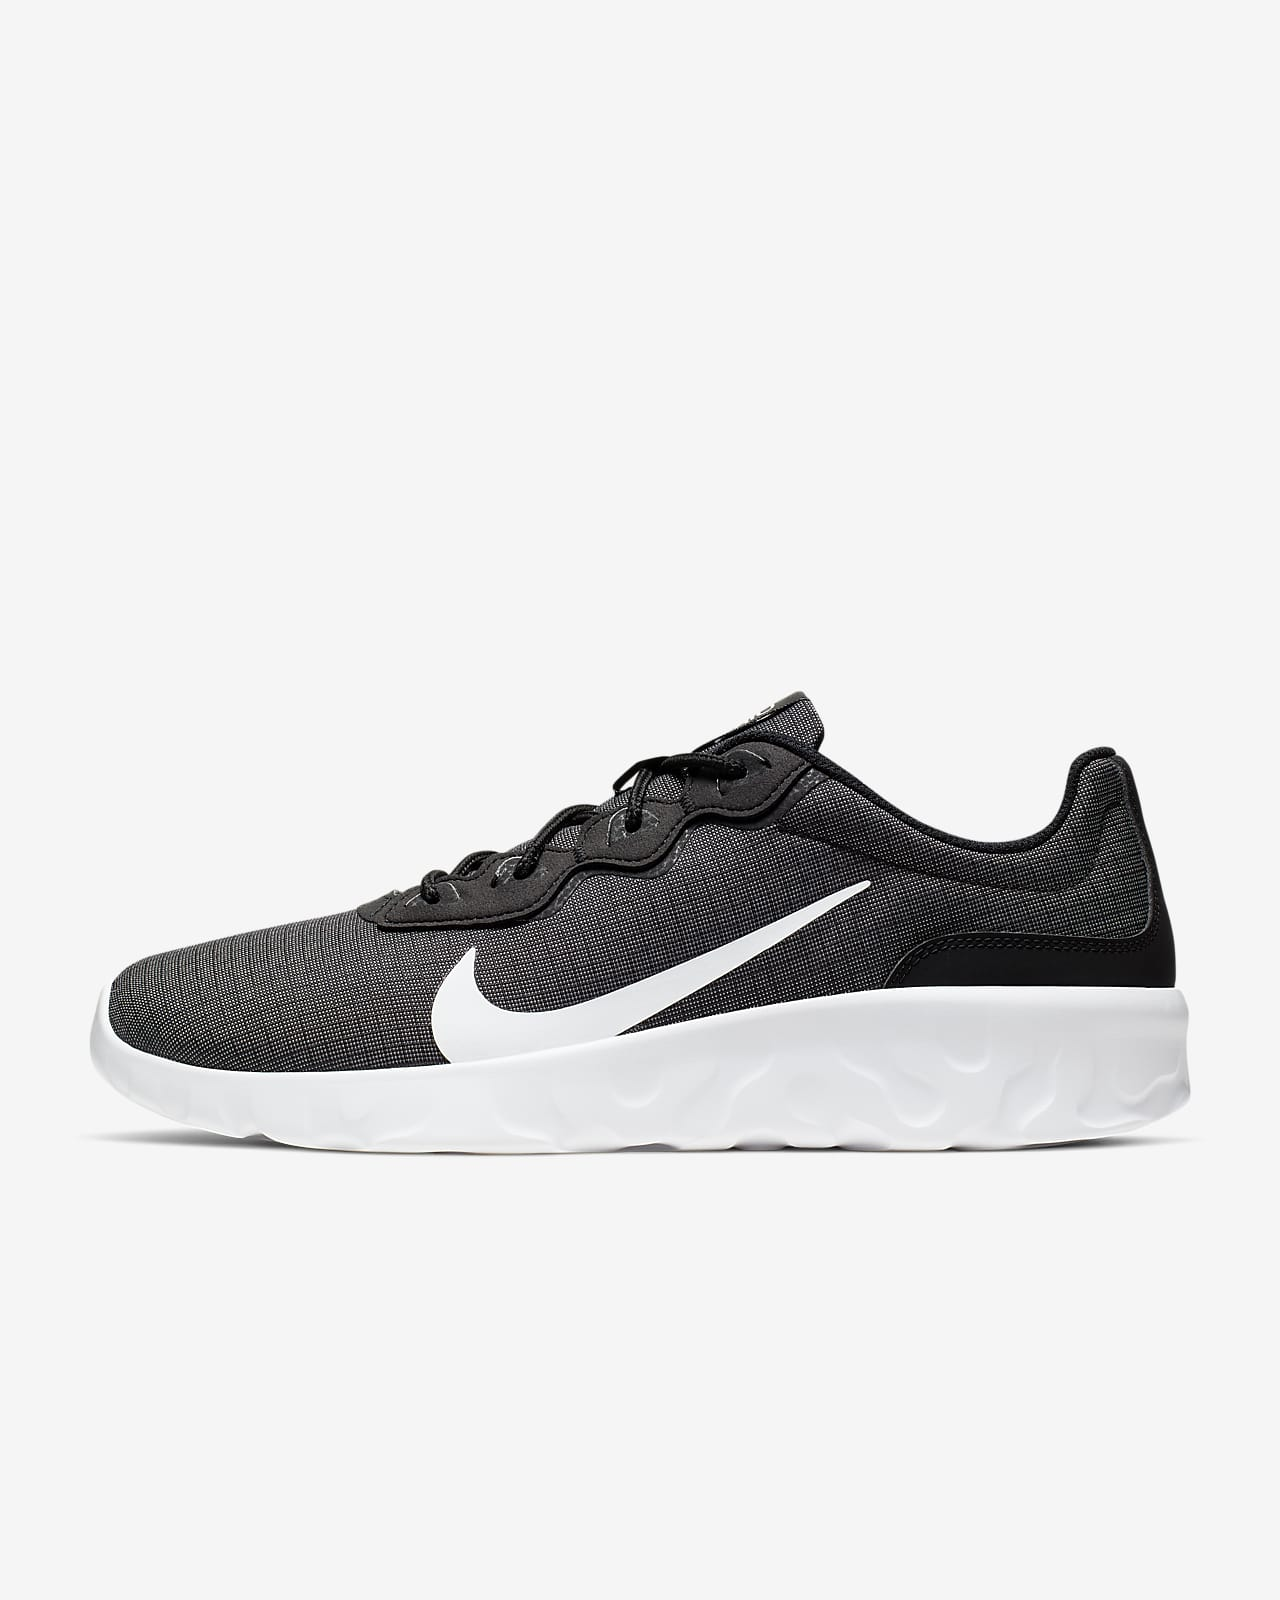 nike chaussure noire homme